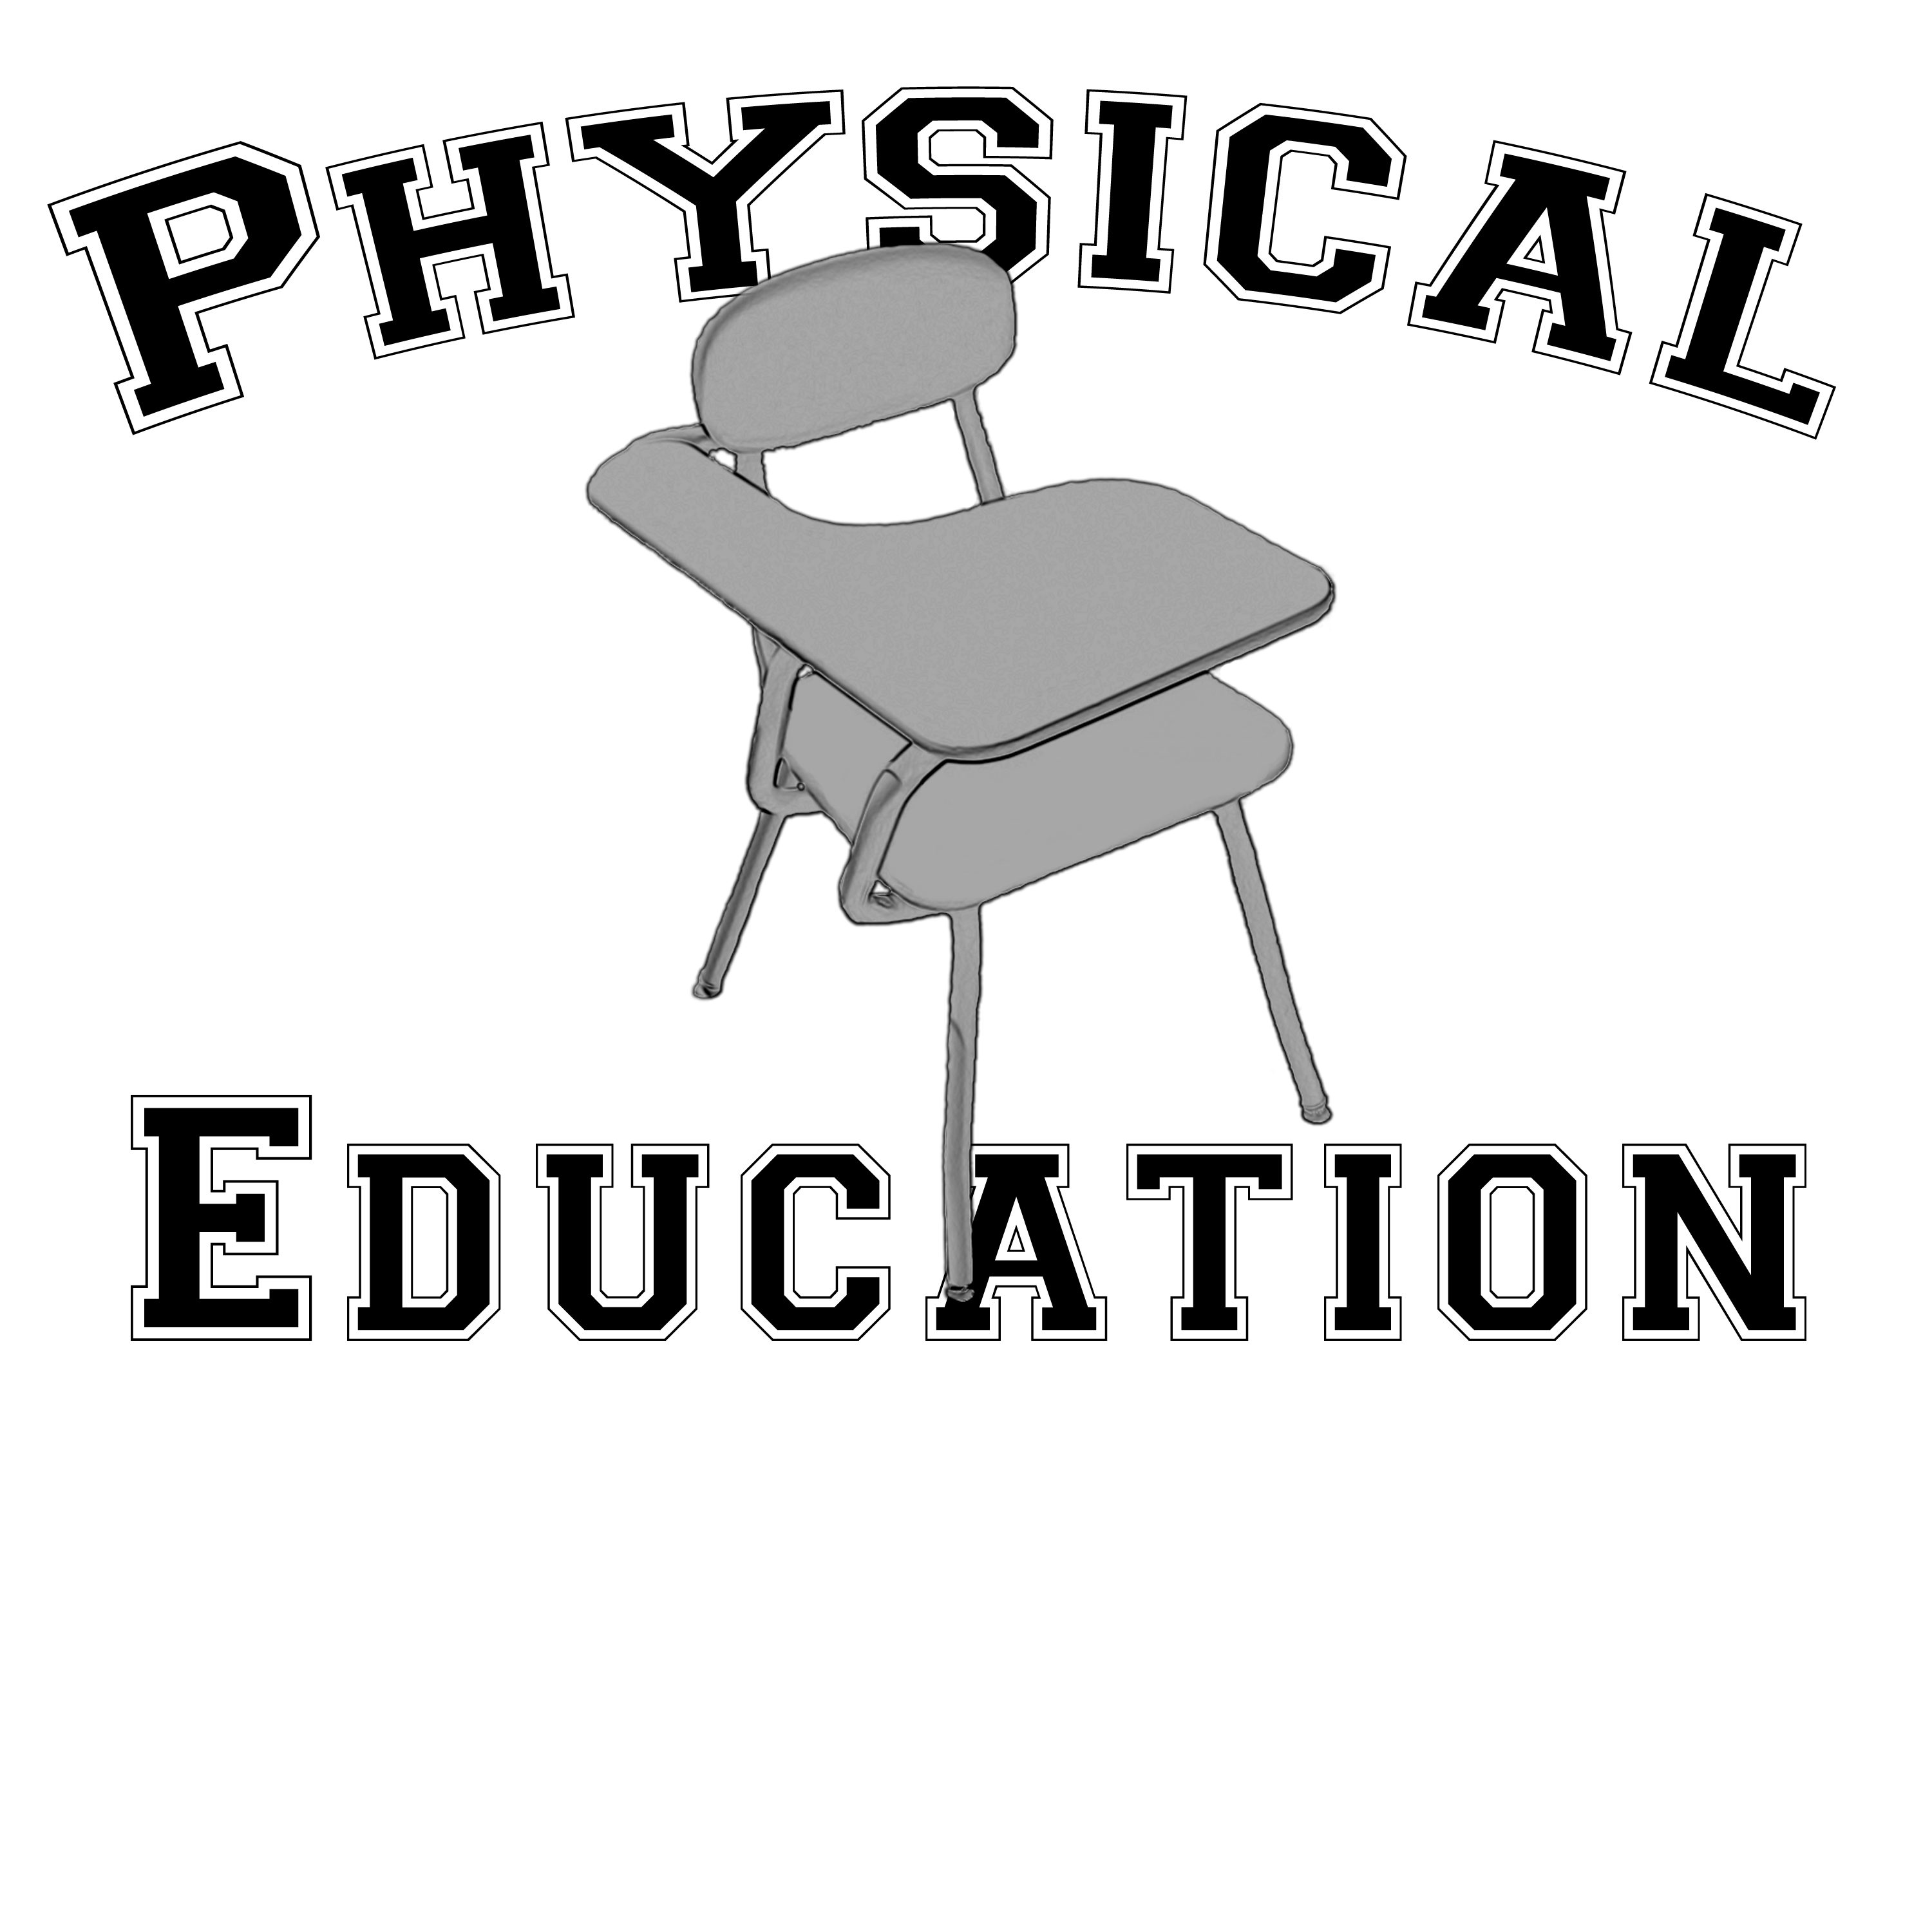 Certification of Physical Education (CPEd)